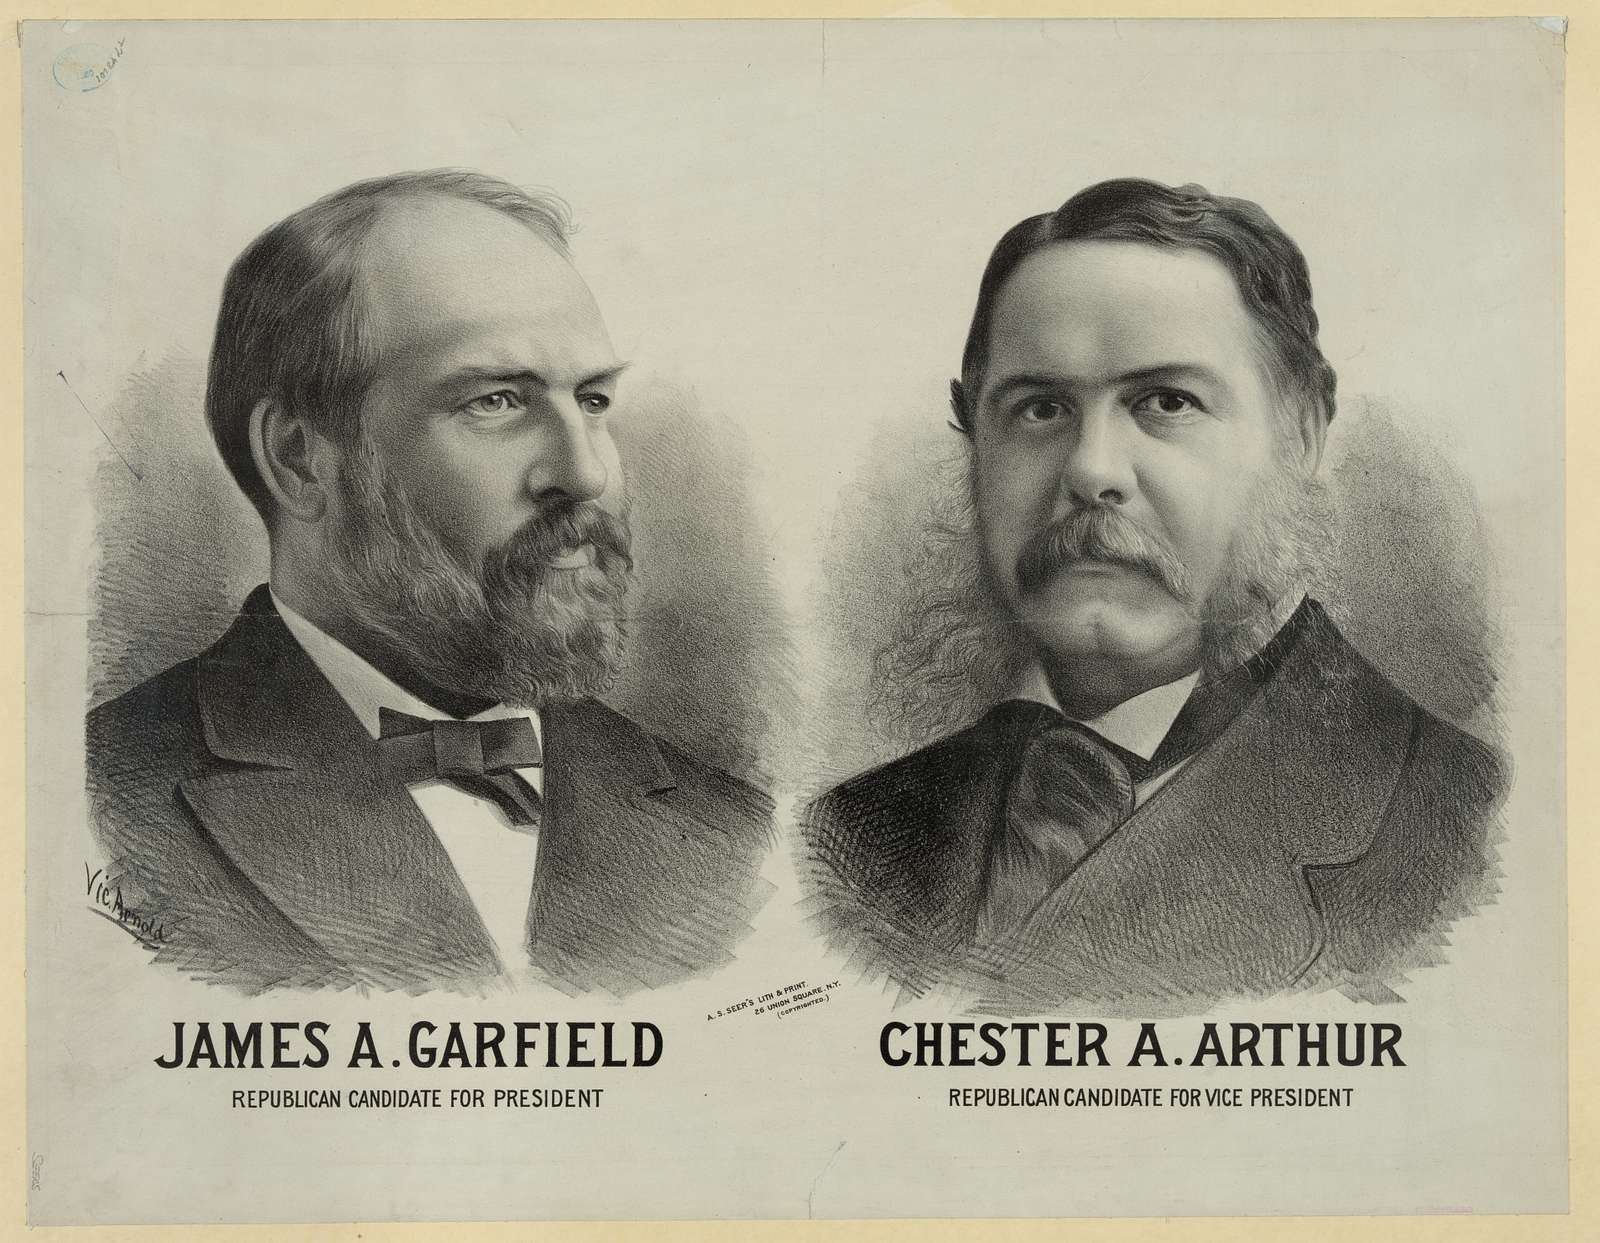 James A. Garfield  Republican candidate for president - Chester A. Arthur Republican candidate for vice president / Vic Arnold.